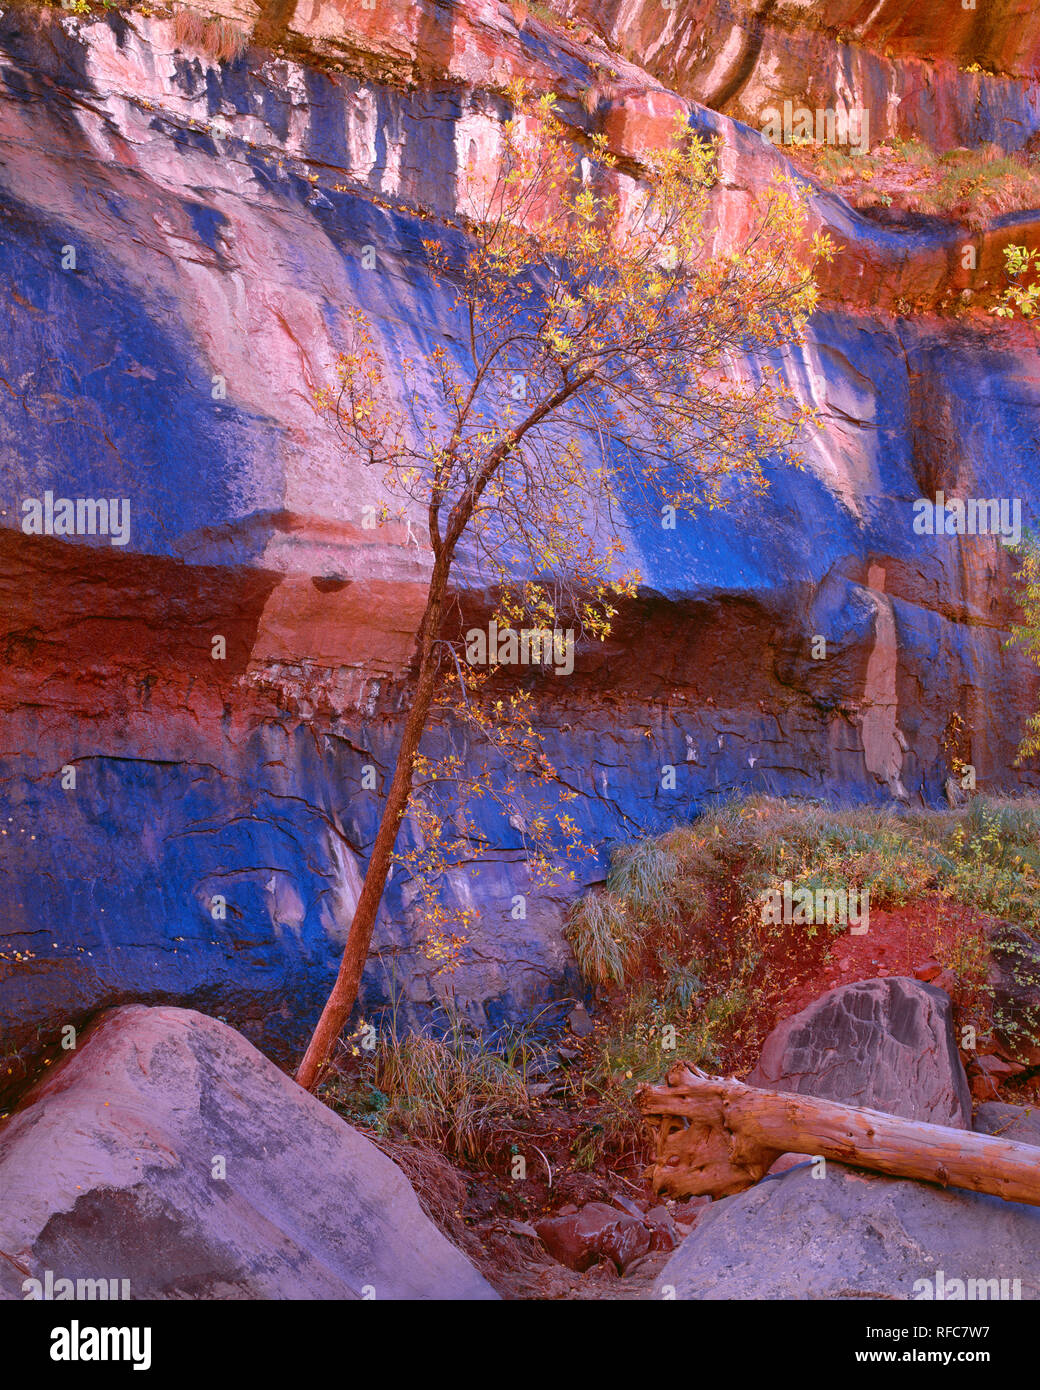 USA, Utah, Zion National Park, Wall of wet Navajo Sandstone from natural seepage and fall colored box elder; Zion Canyon. - Stock Image